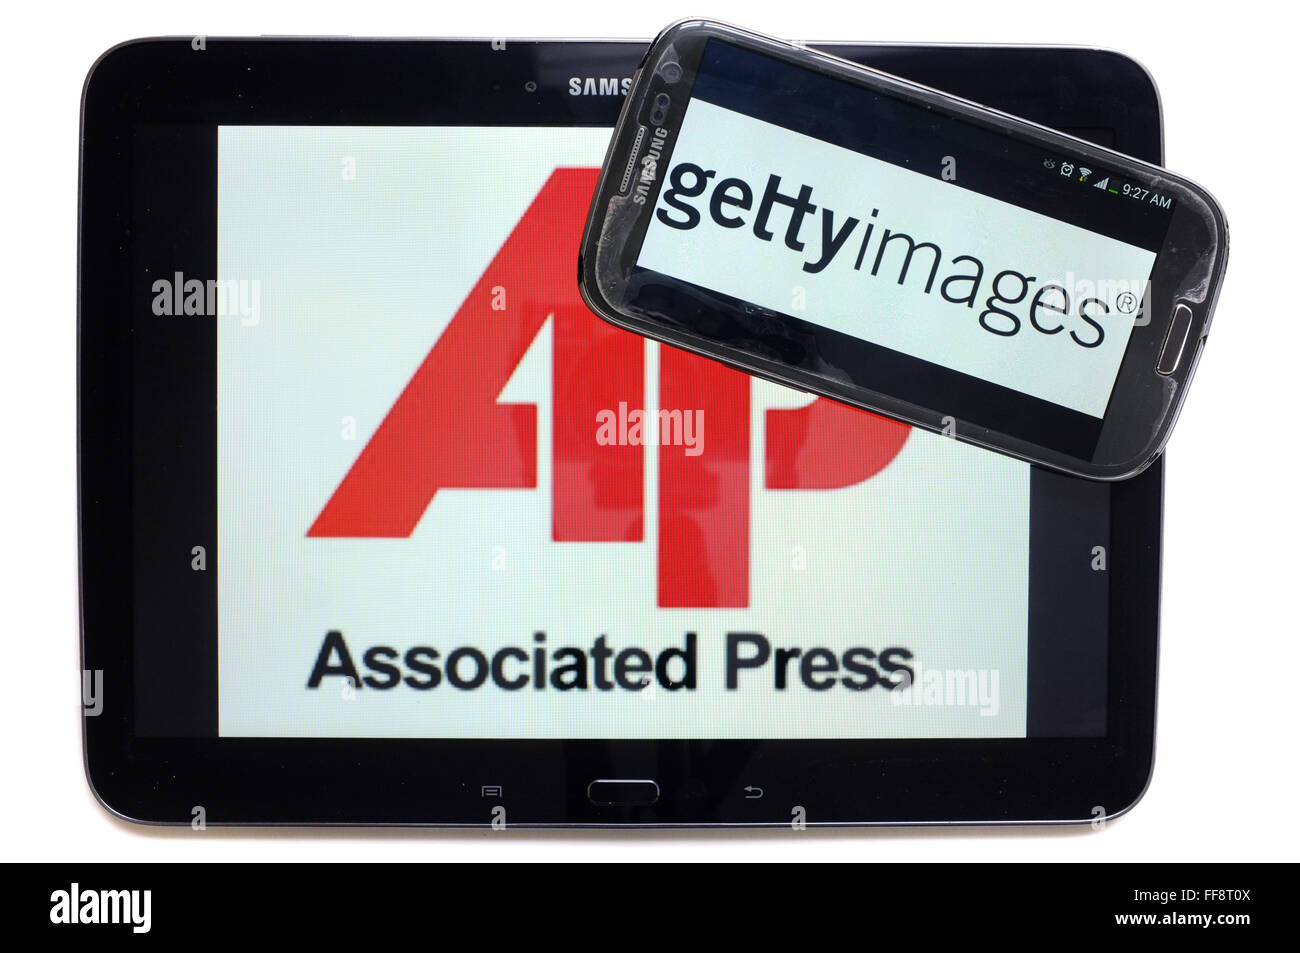 The news agencies AP and getty images on the screens of a tablet and a smartphone photographed against a white background. - Stock Image